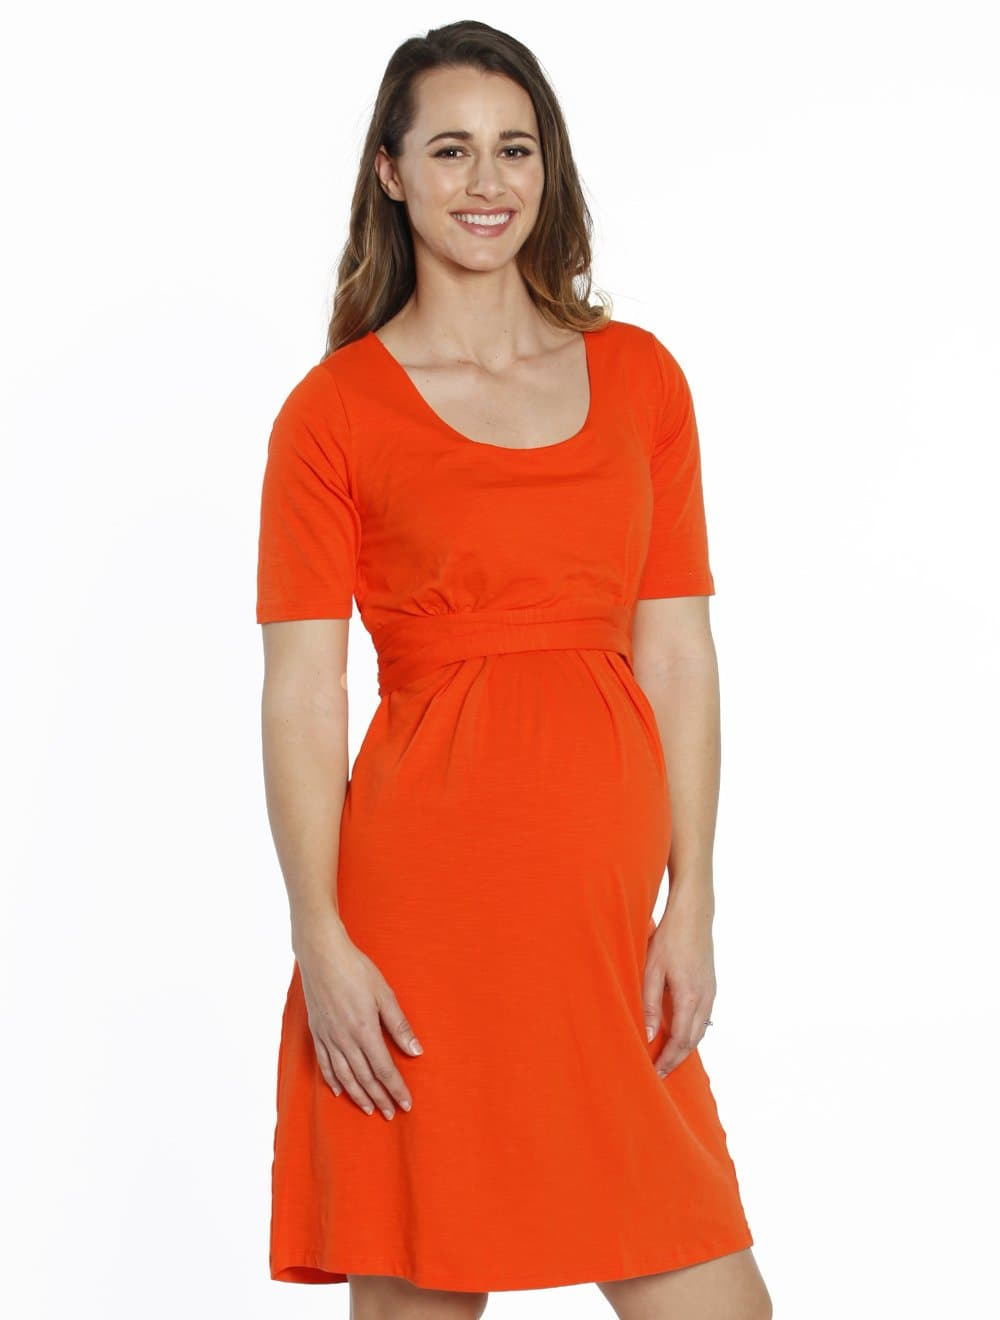 Busy Mummy Nursing Empire Waist Dress in Tangerine - Angel Maternity - Maternity clothes - shop online